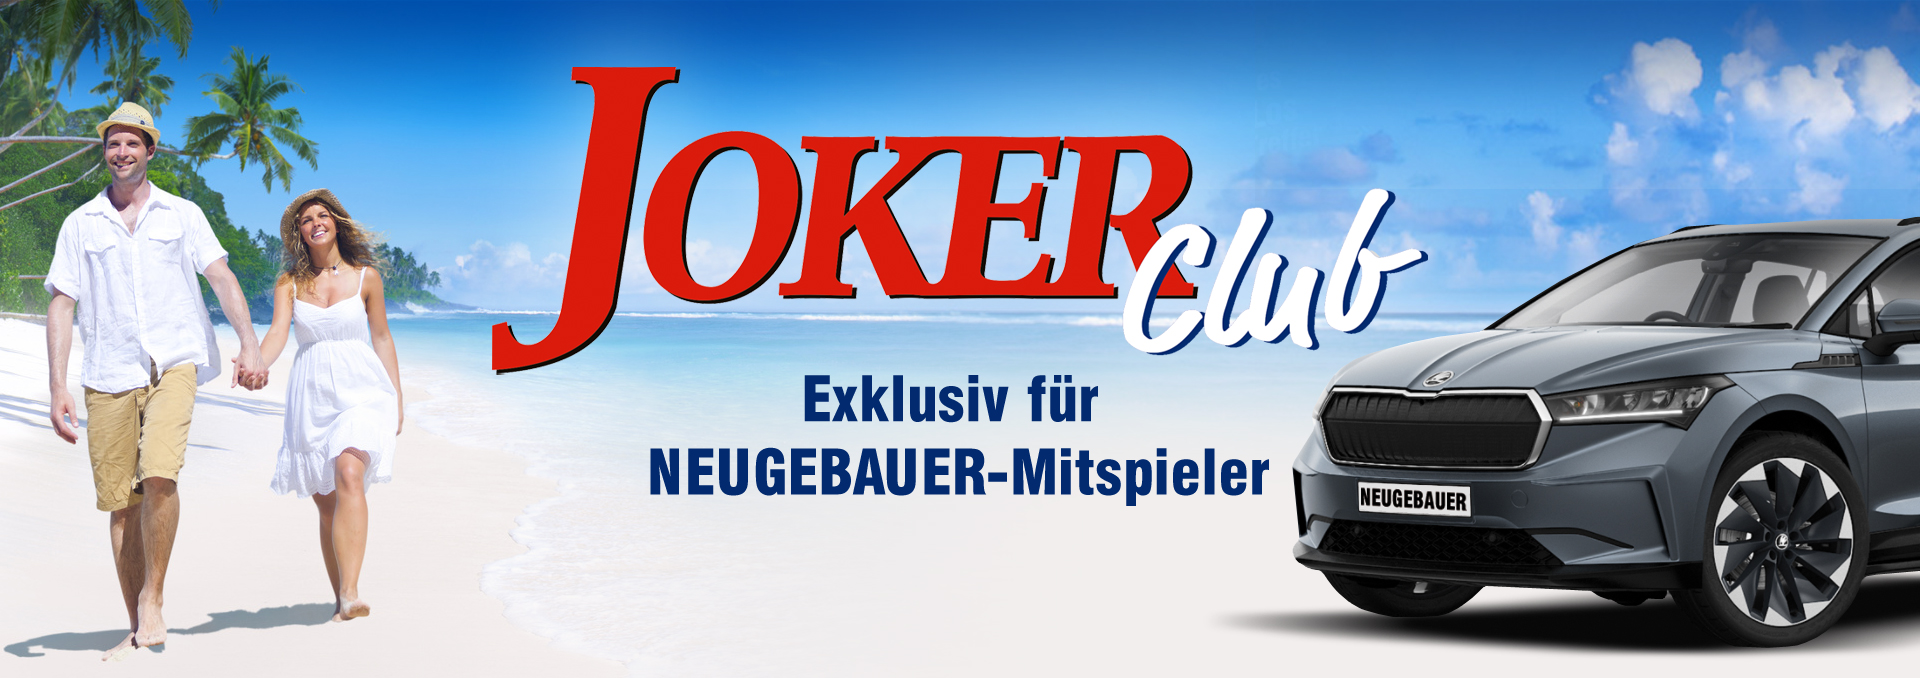 NKL Joker Club